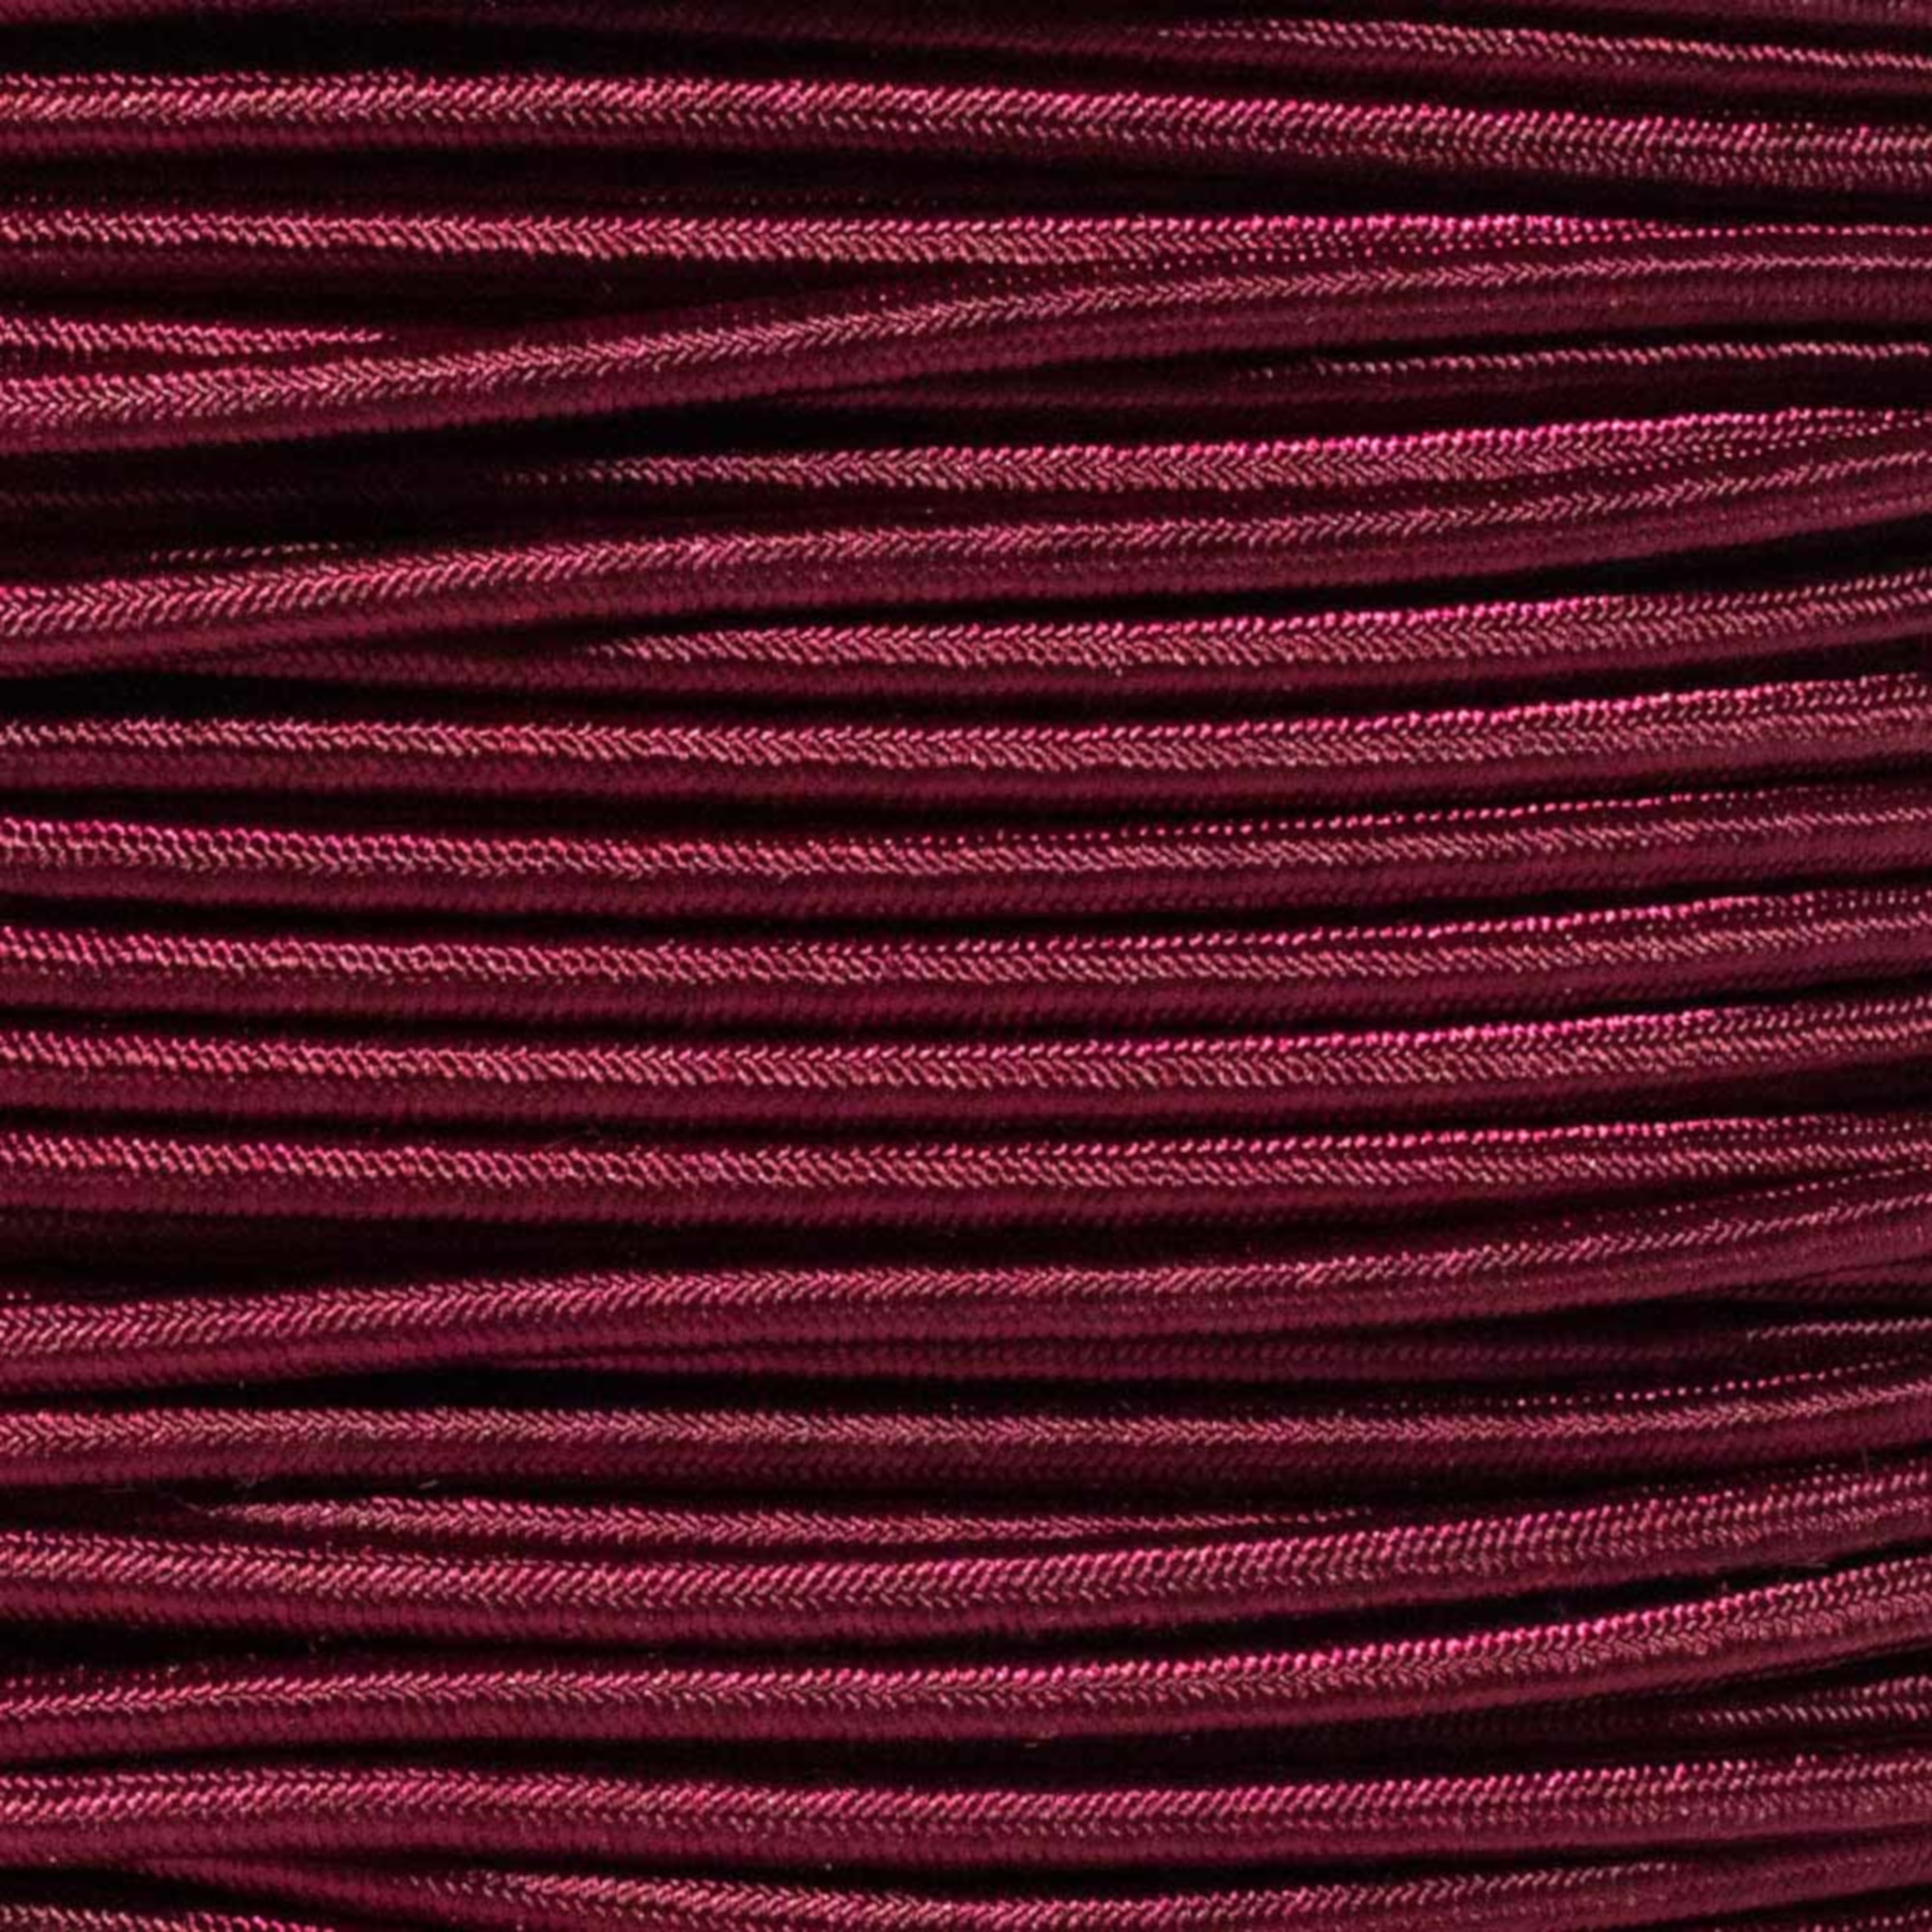 """Paracord Planet 3/16"""" inch Elastic Bungee Nylon Shock Cord Crafting Stretch String - Various Colors - 10 25 50 & 100 Foot Lengths Made in USA"""